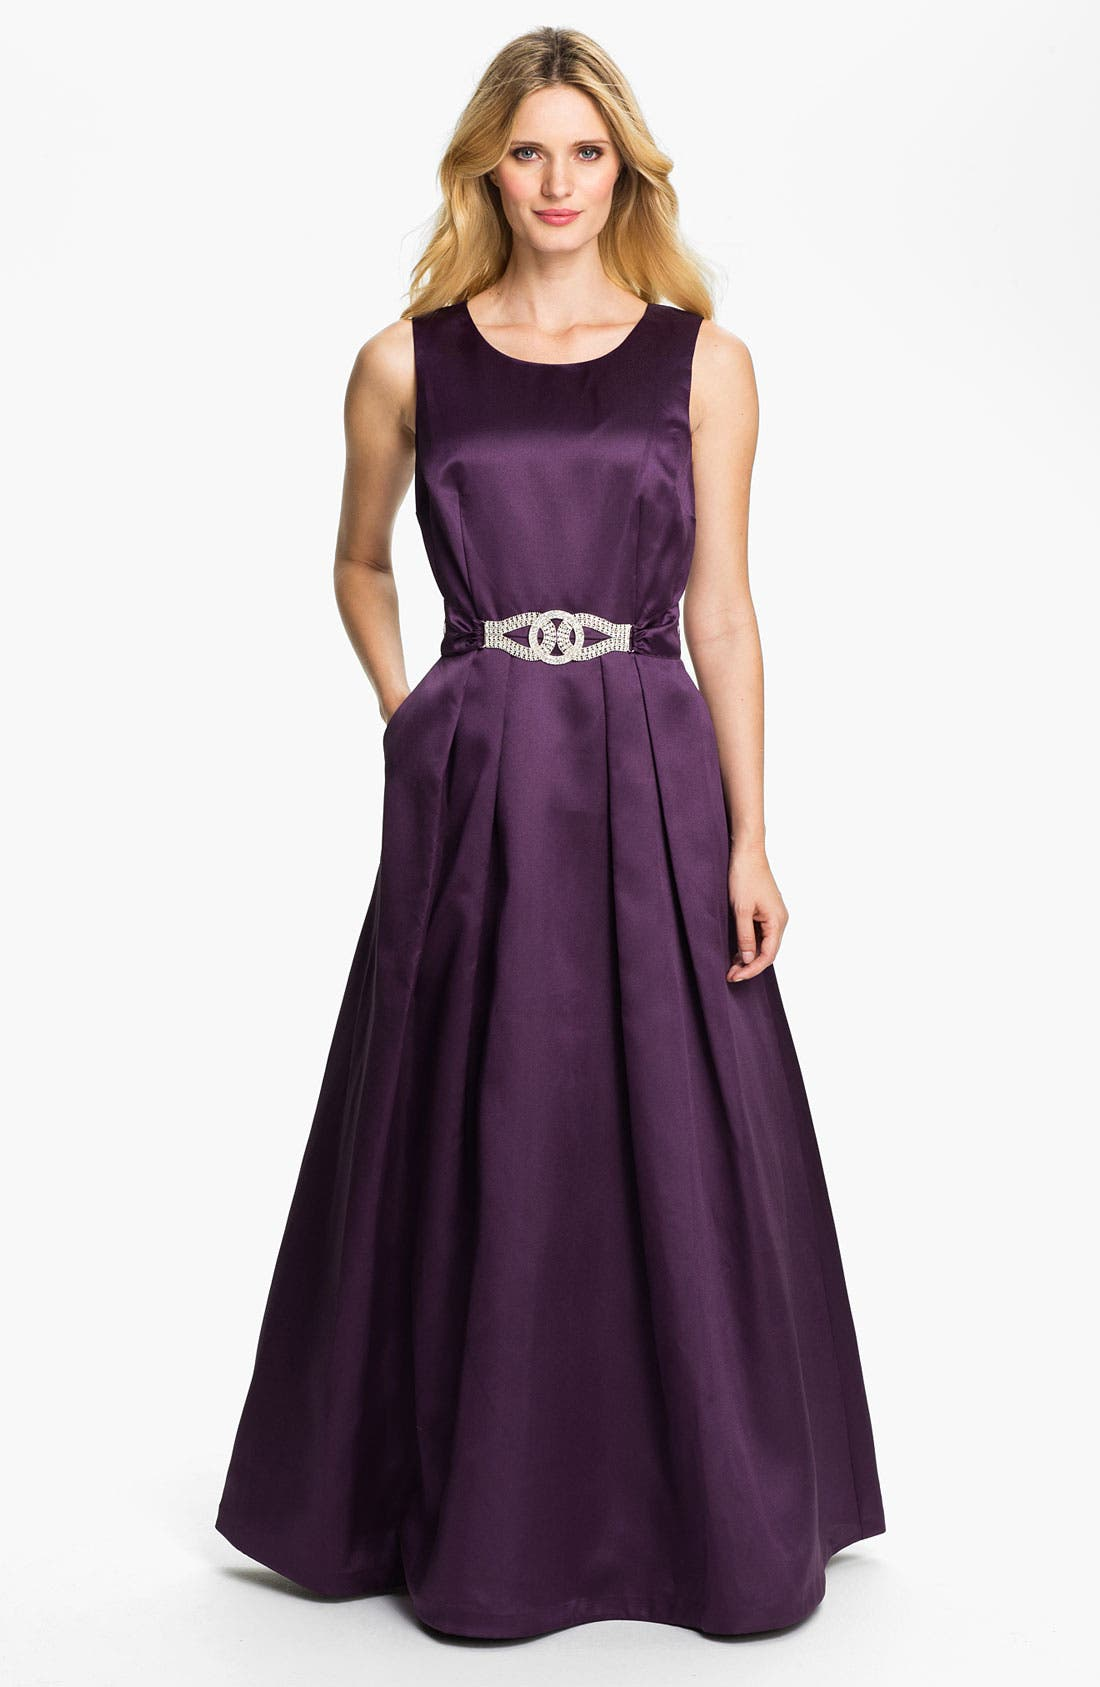 Main Image - Alex Evenings Rhinestone Buckle Faille A-Line Gown